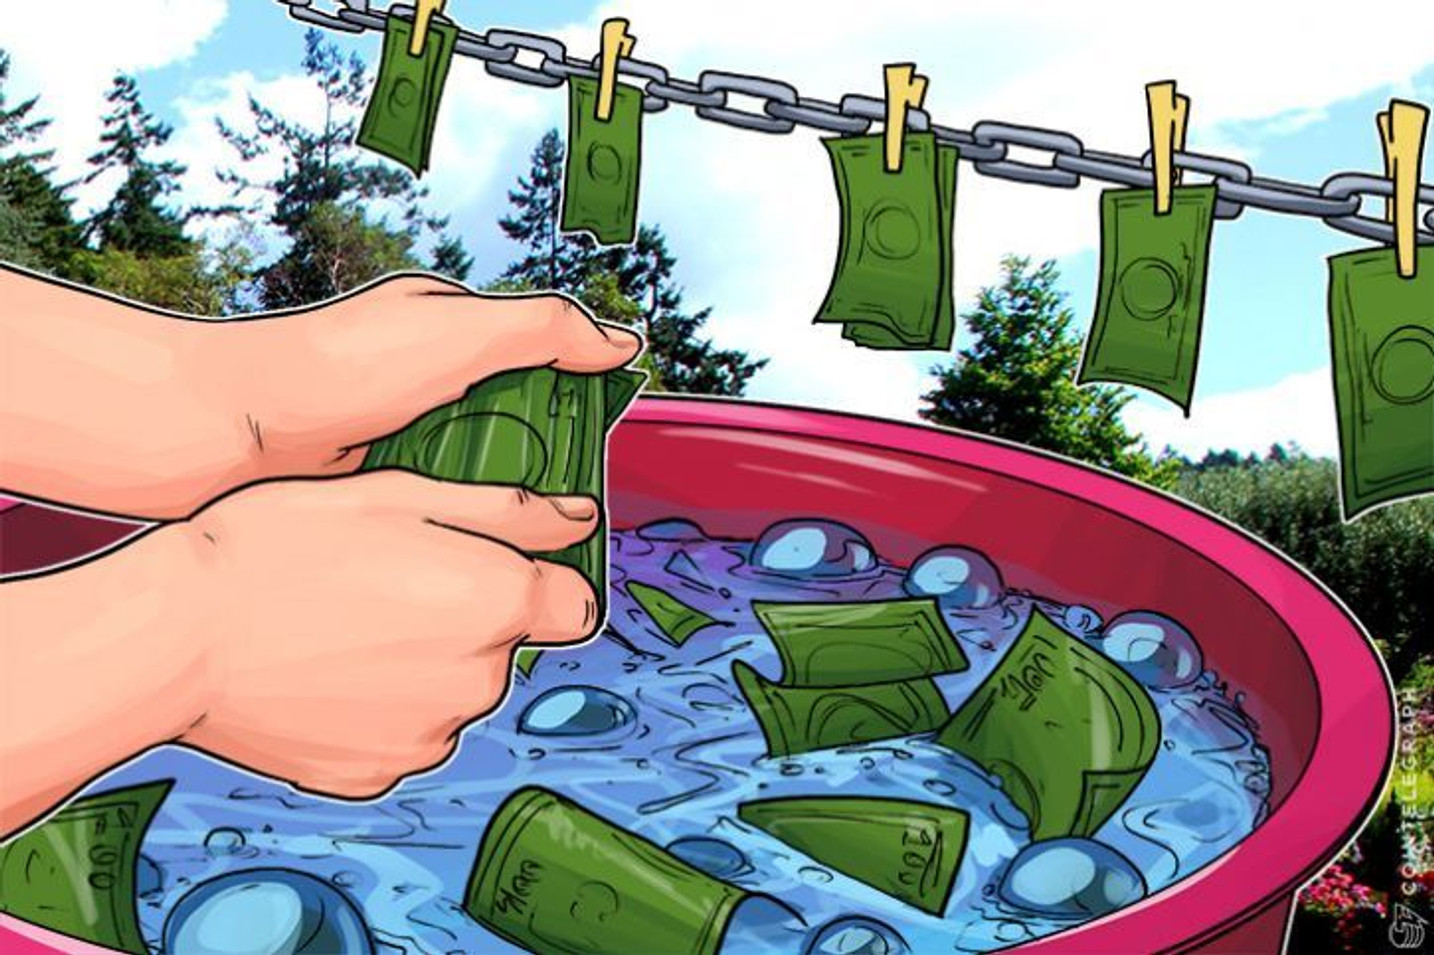 Bitcoin Laundering Less Than One Percent of All Transactions